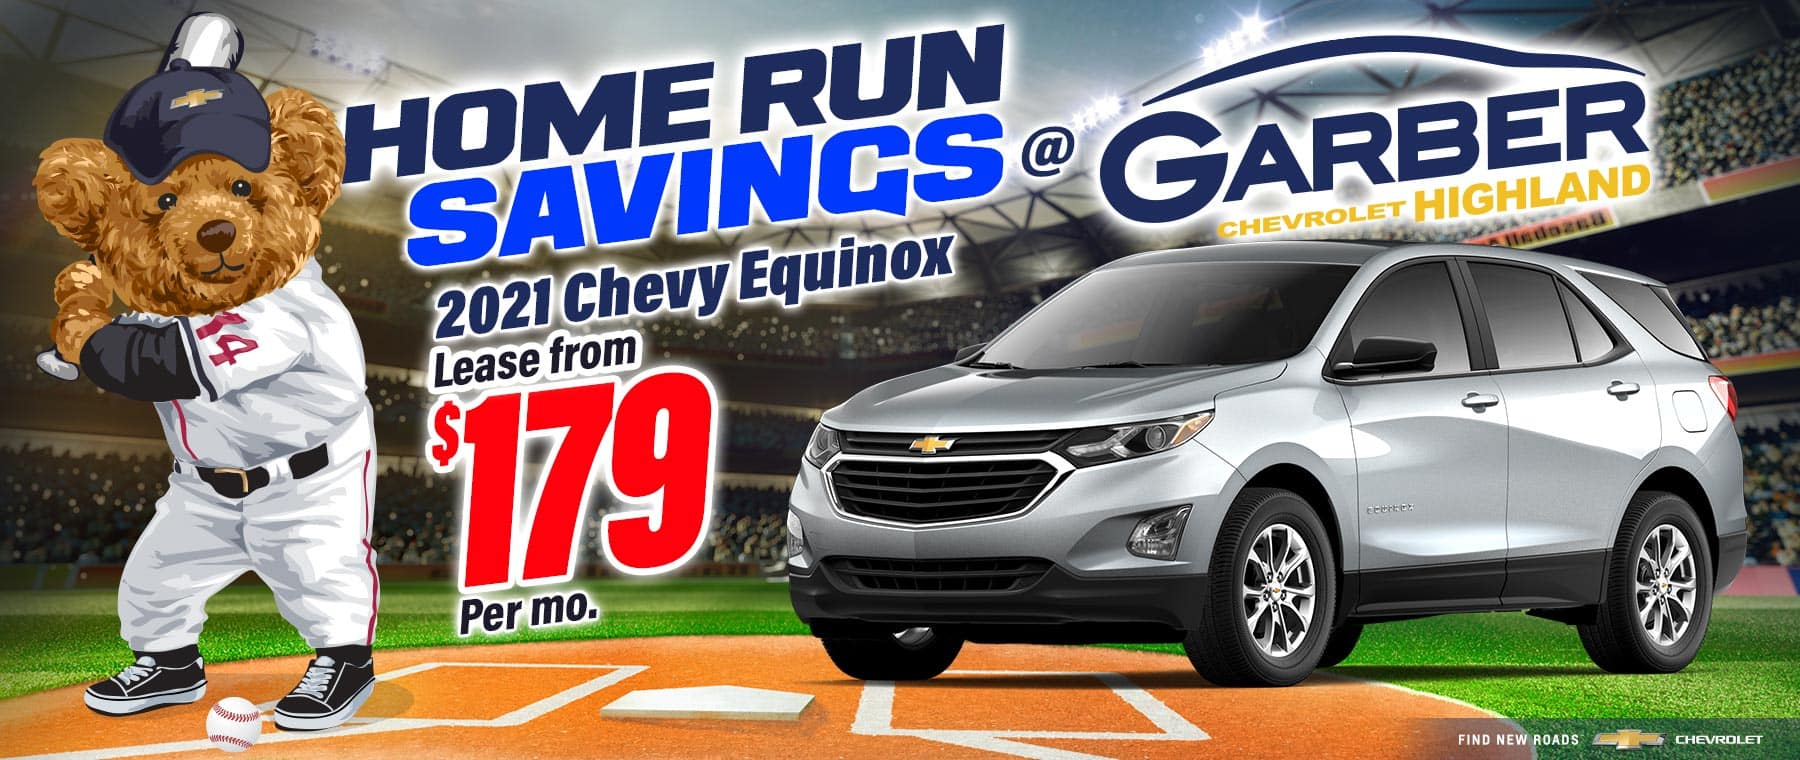 2021 Chevy Equinox - lease from $179 per month